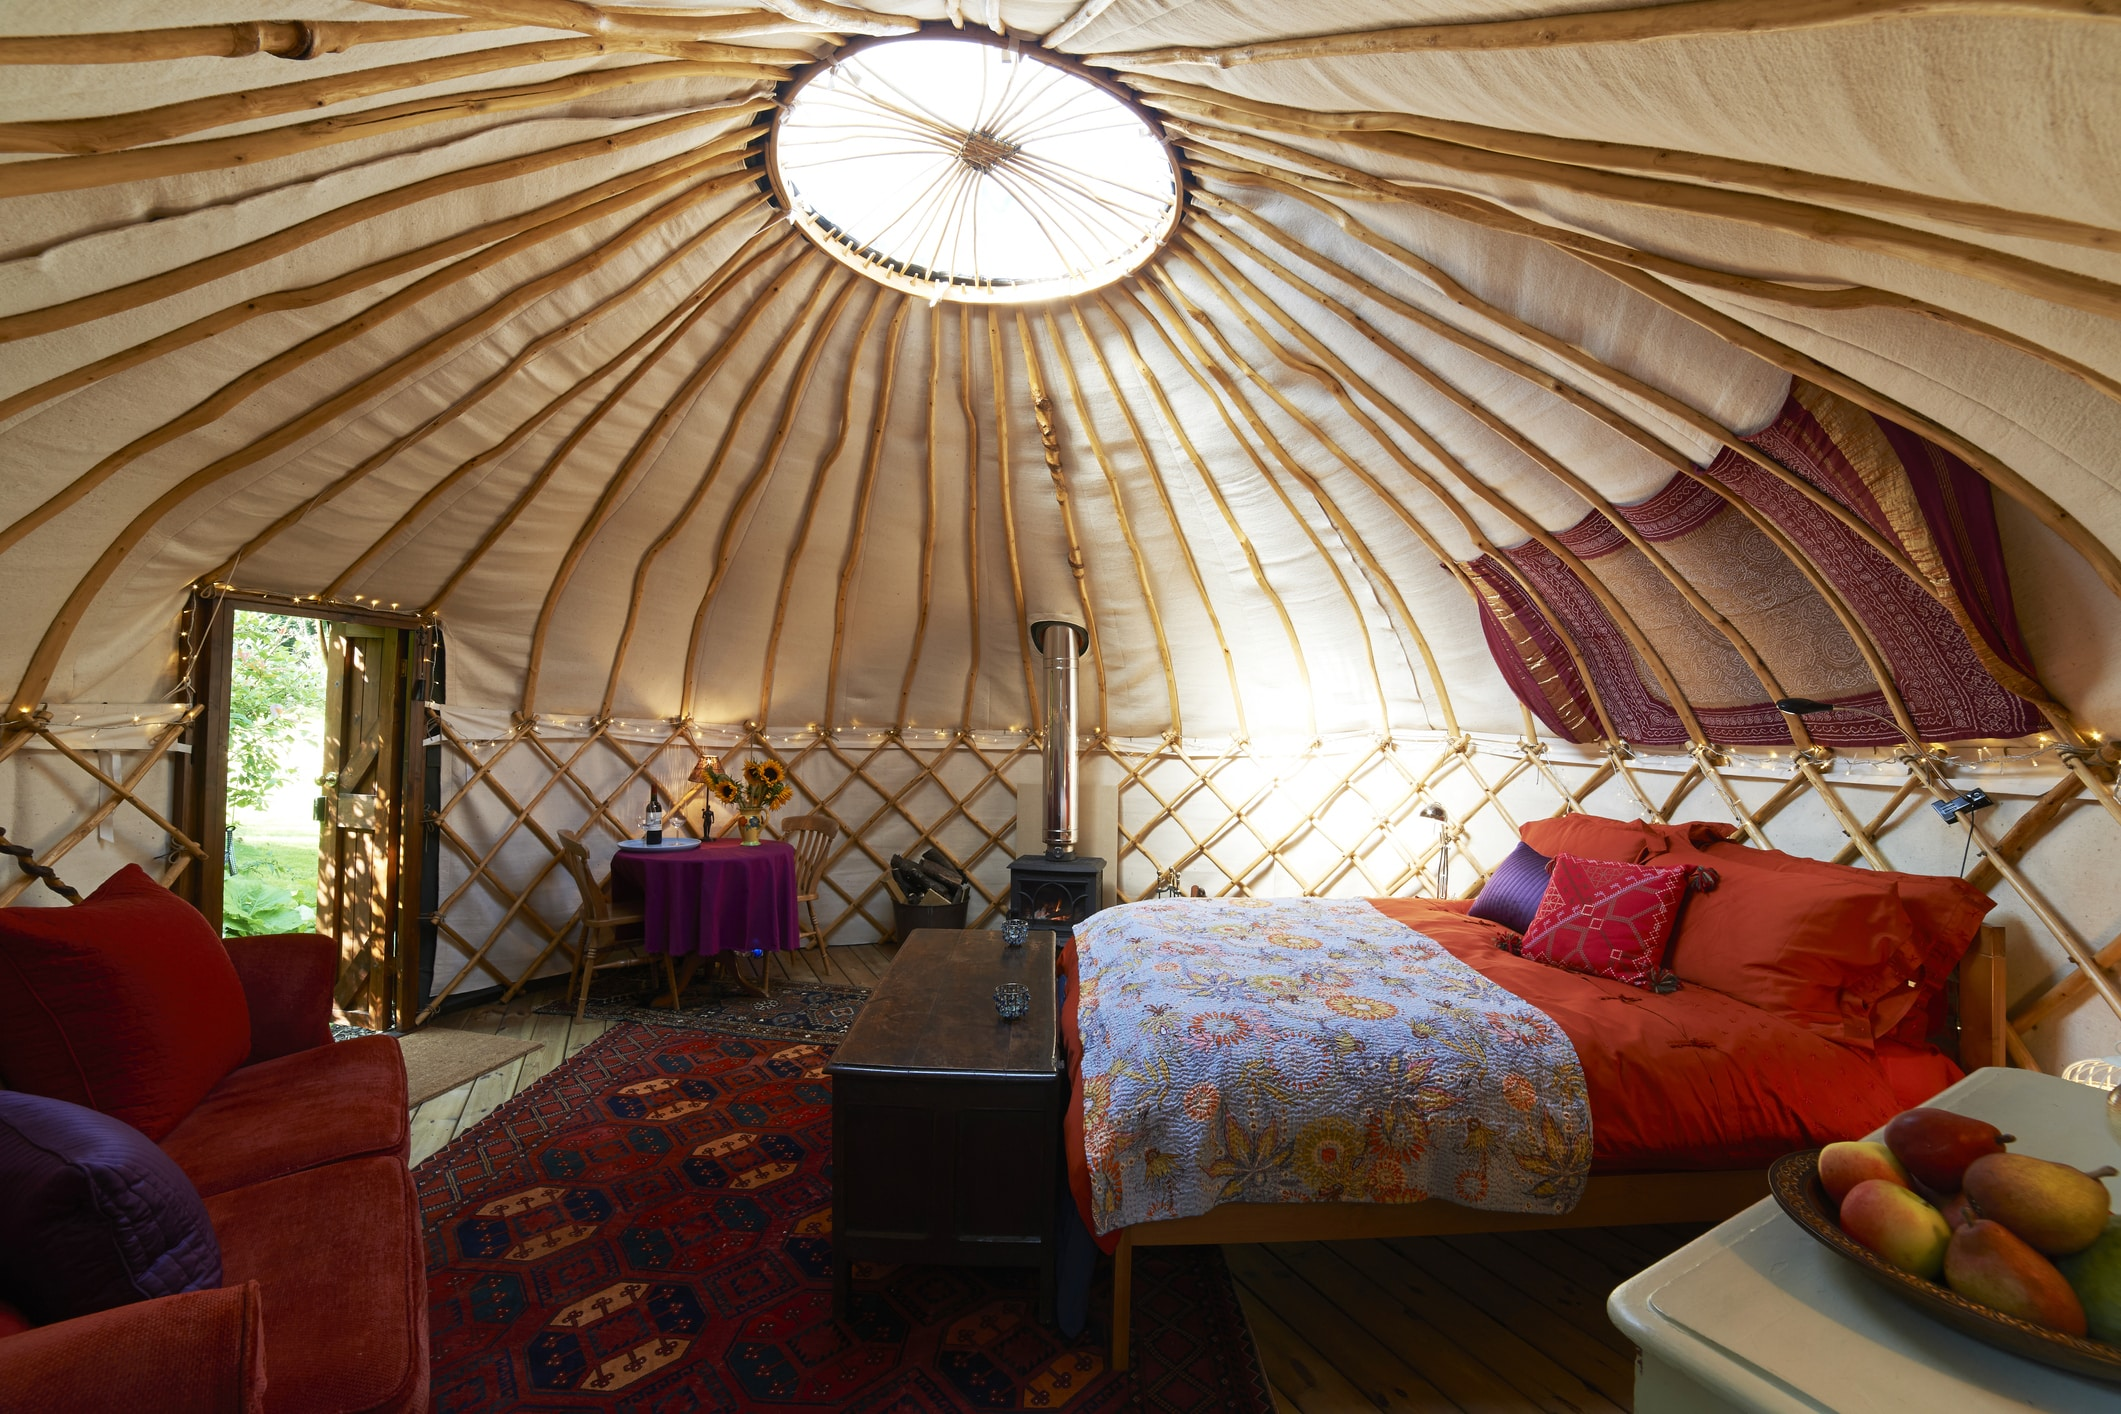 A view of the bedroom in a glamping tent